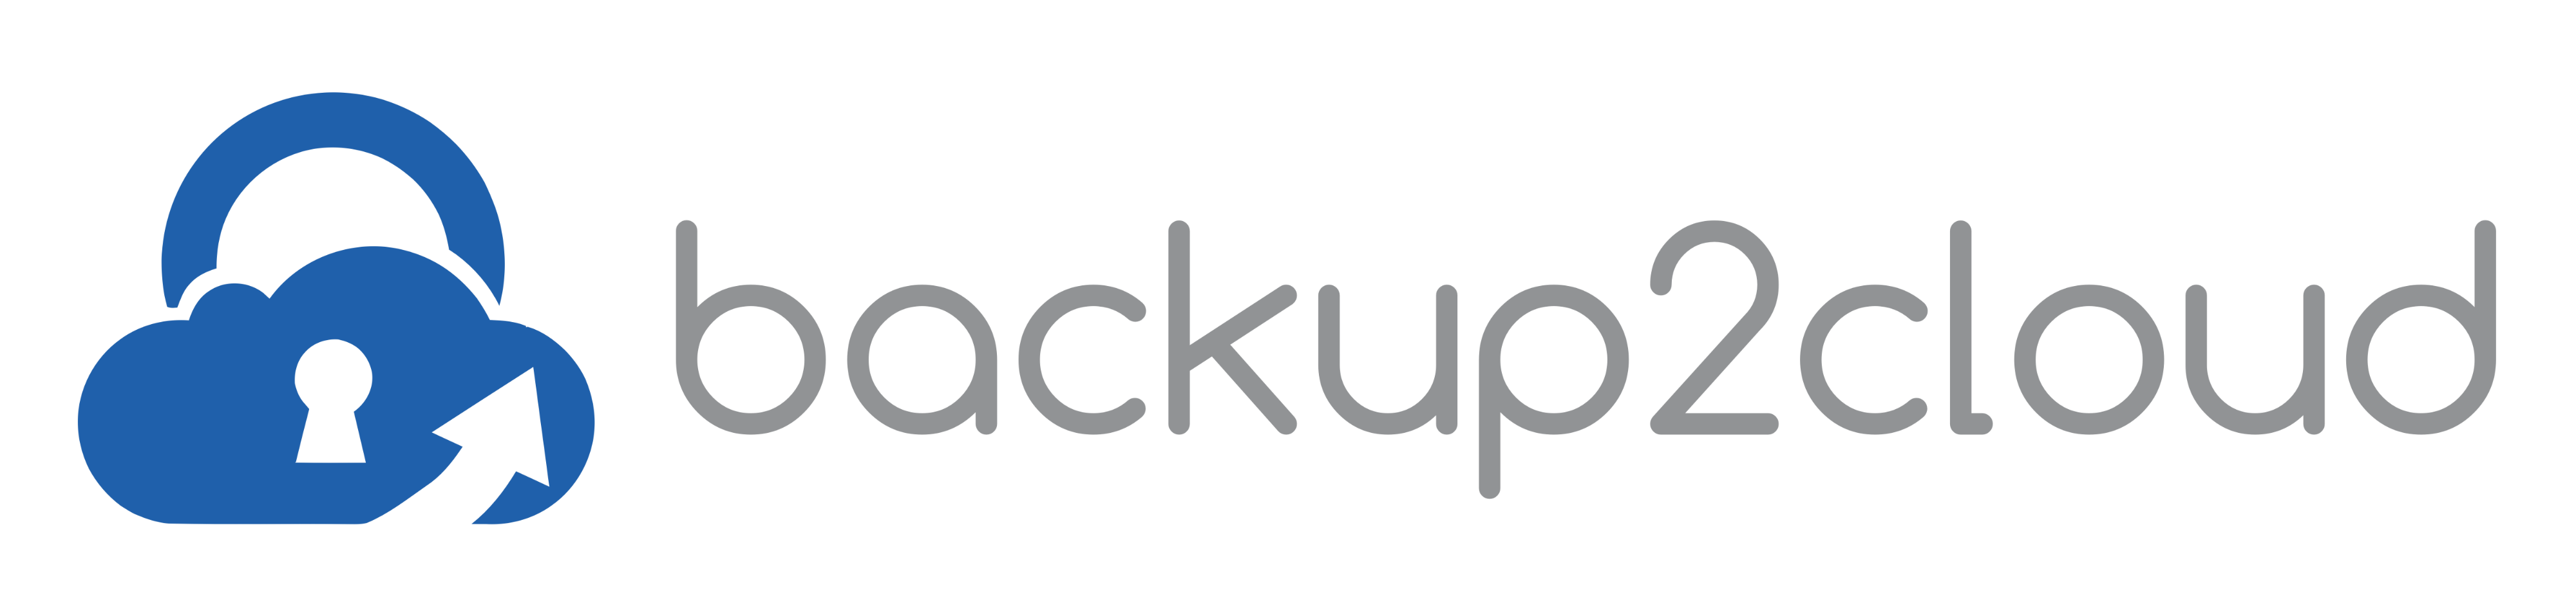 backup2cloud is AssureStor's Back as a Service (BaaS) offering.